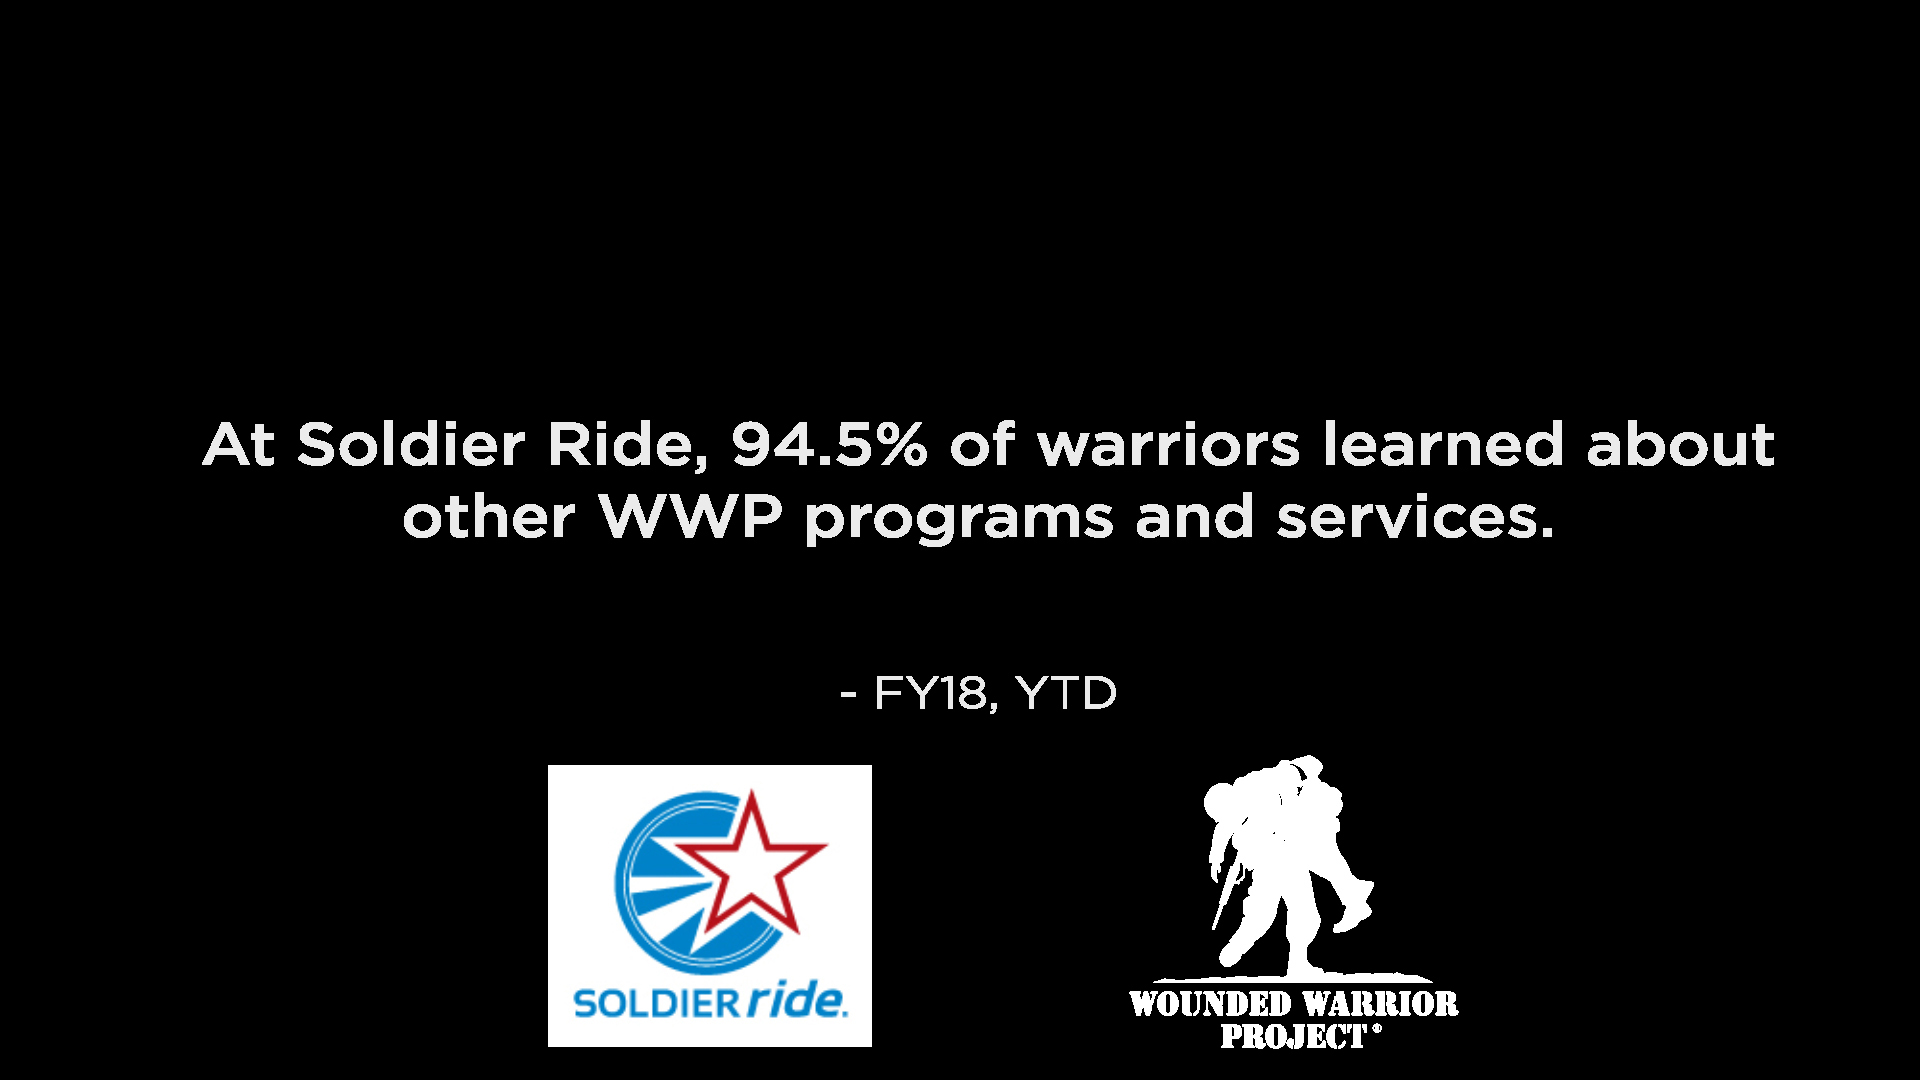 Warrior Program Awareness - Report on the awareness of WWP programs established by warriors during Soldier Rides.